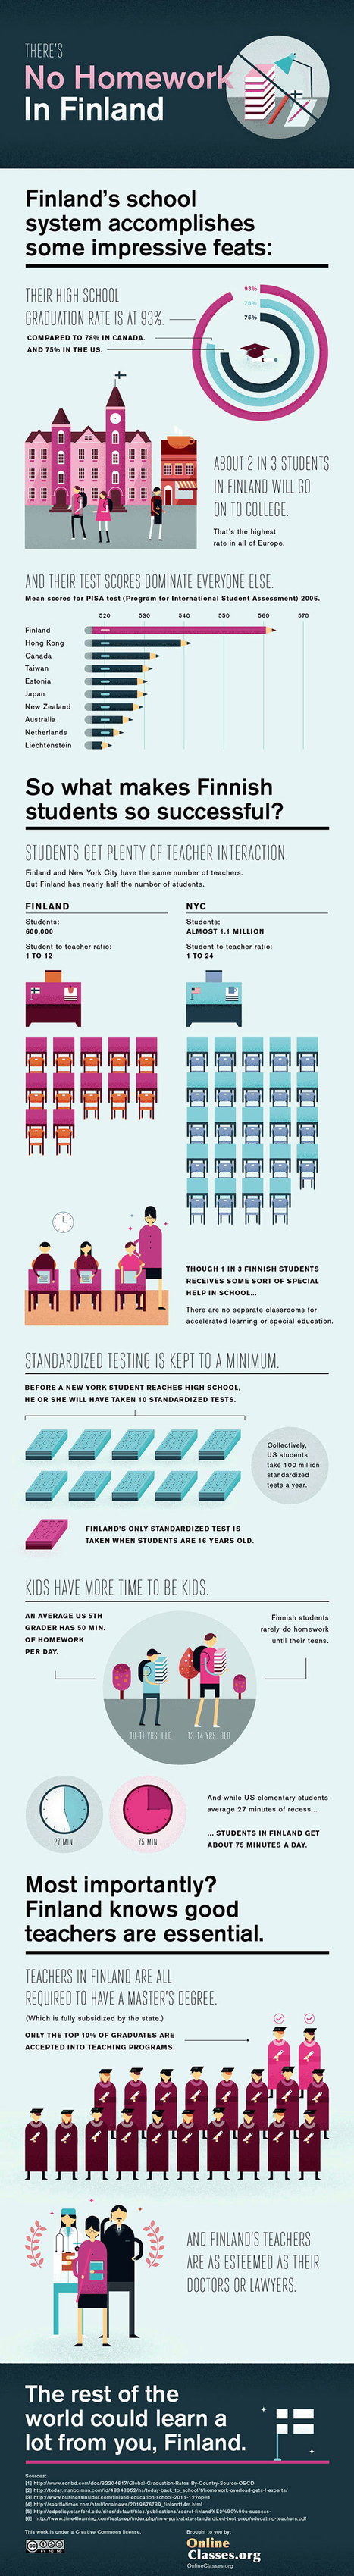 Finland's School System - Infographic | ENT | Scoop.it